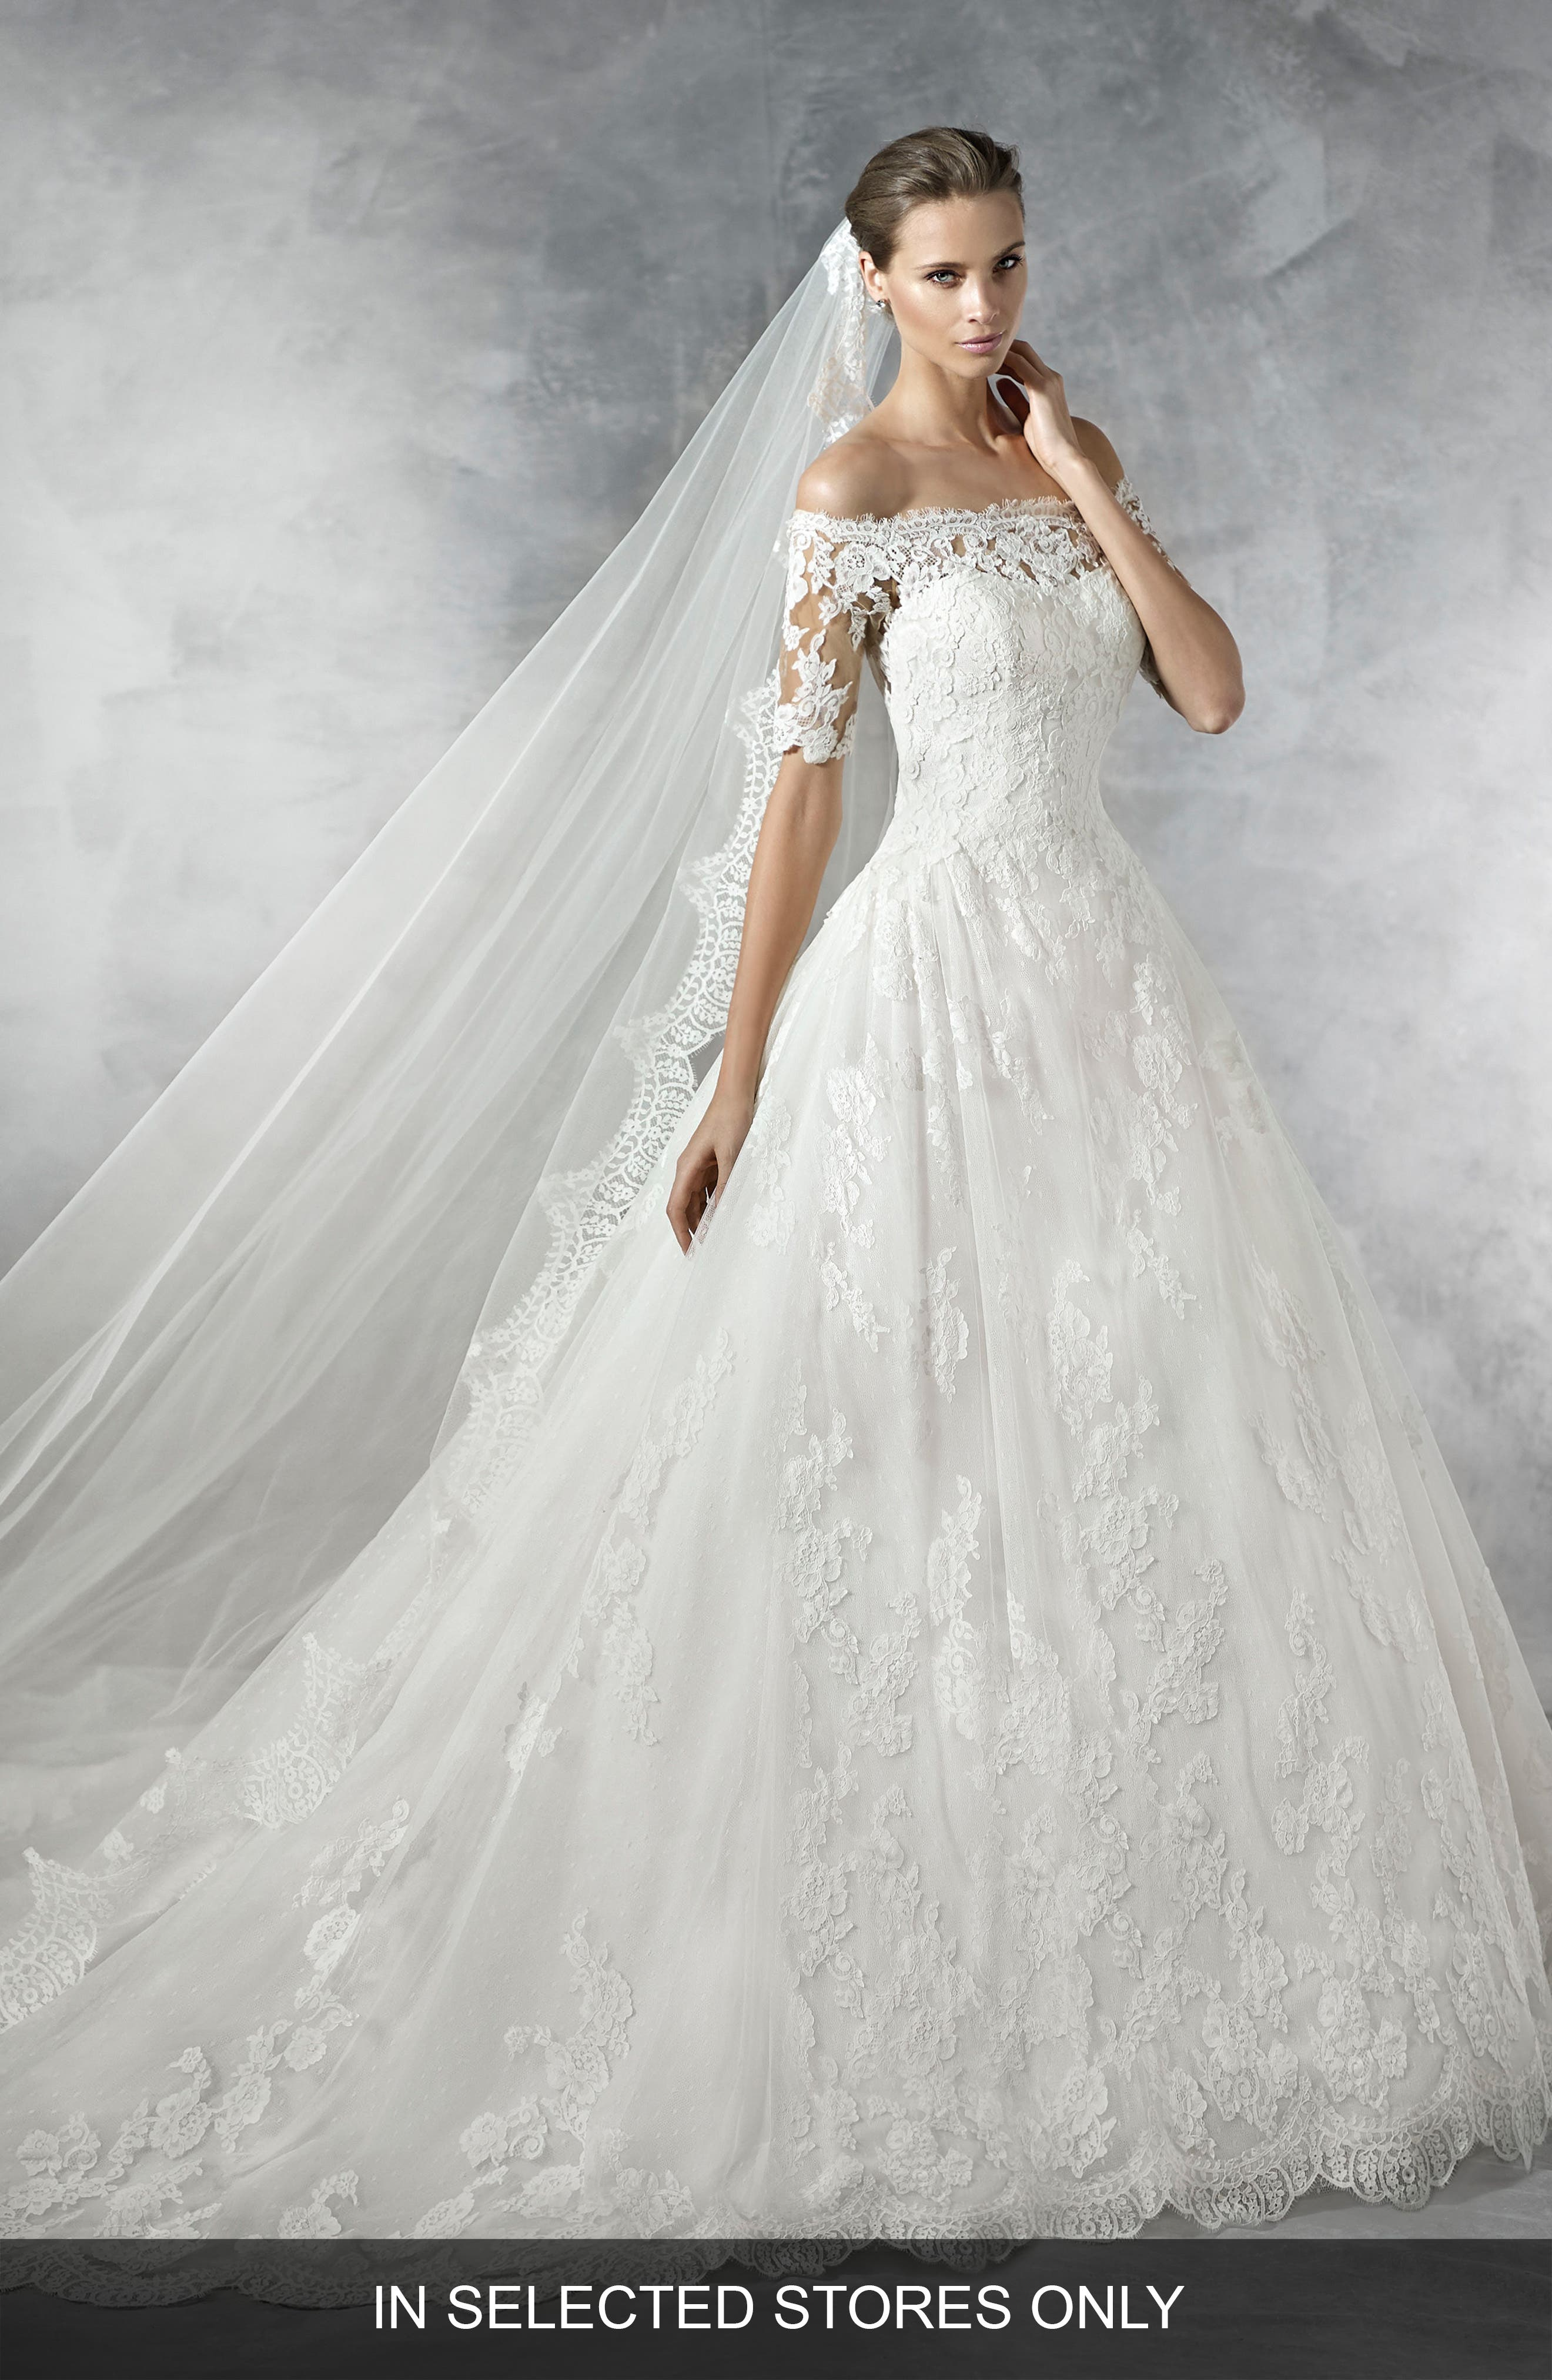 Alternate Image 1 Selected - Pronovias Pleasant Off the Shoulder Tulle & Lace Ballgown